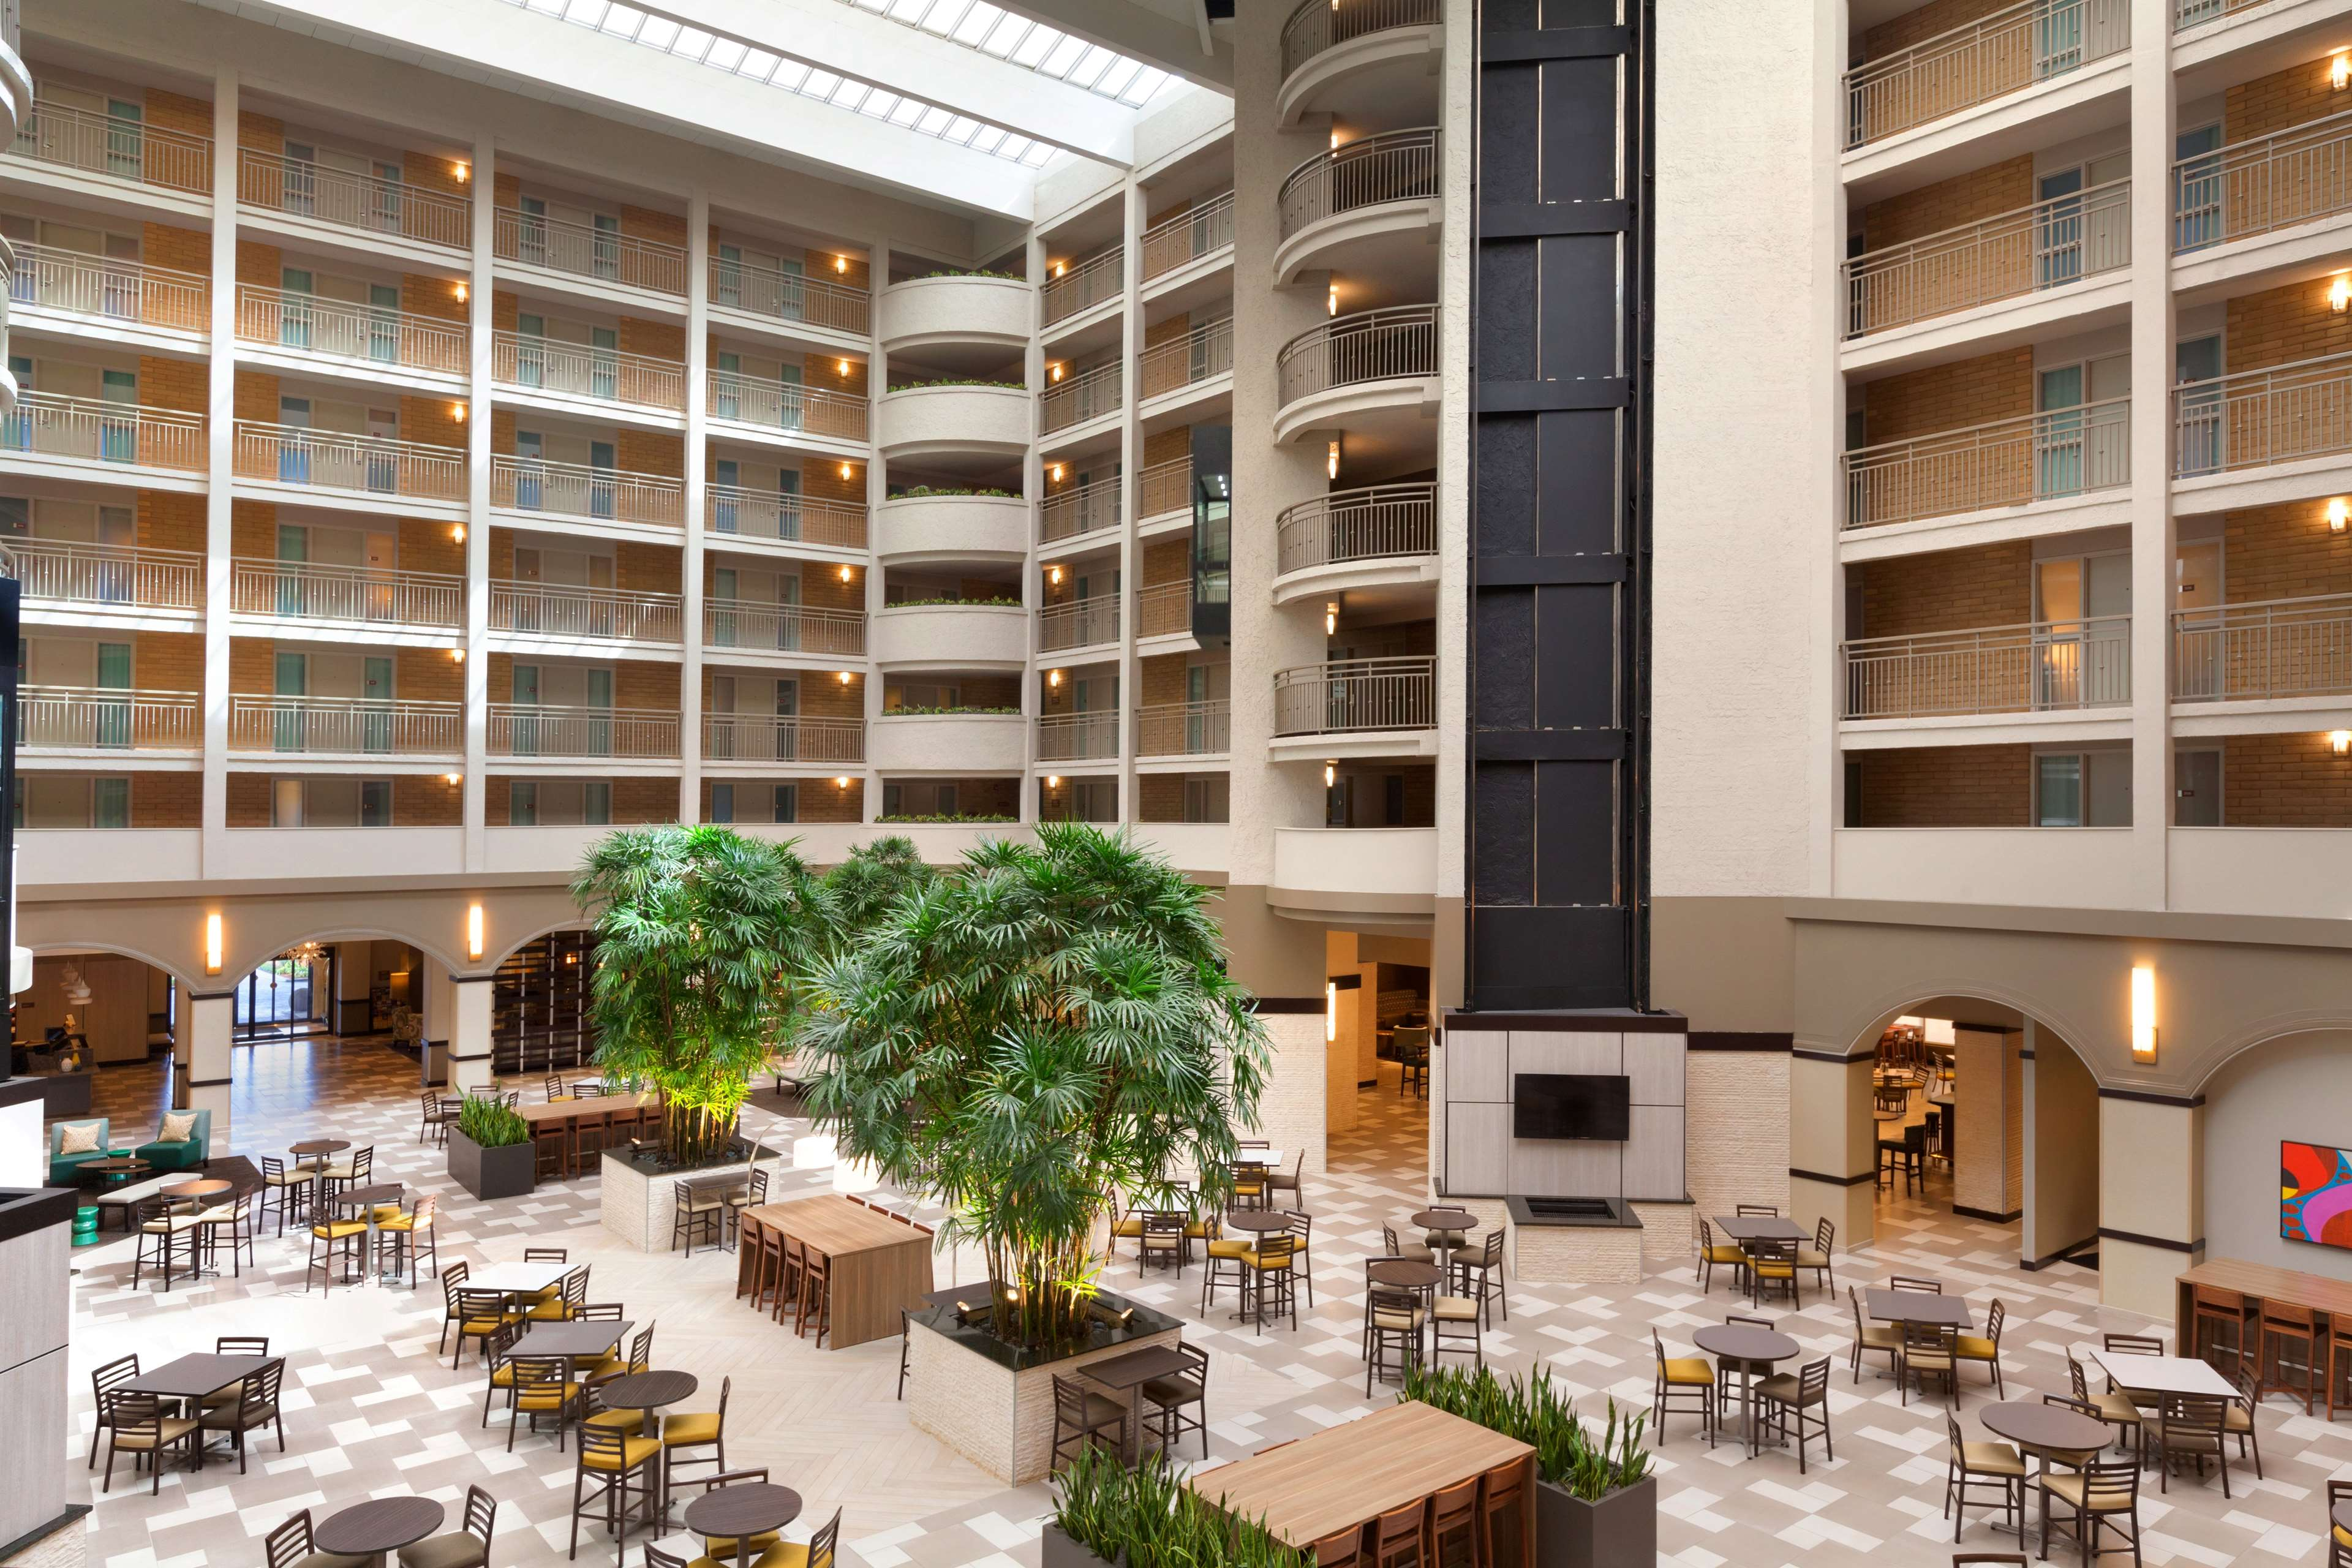 Embassy Suites by Hilton Jacksonville Baymeadows image 4